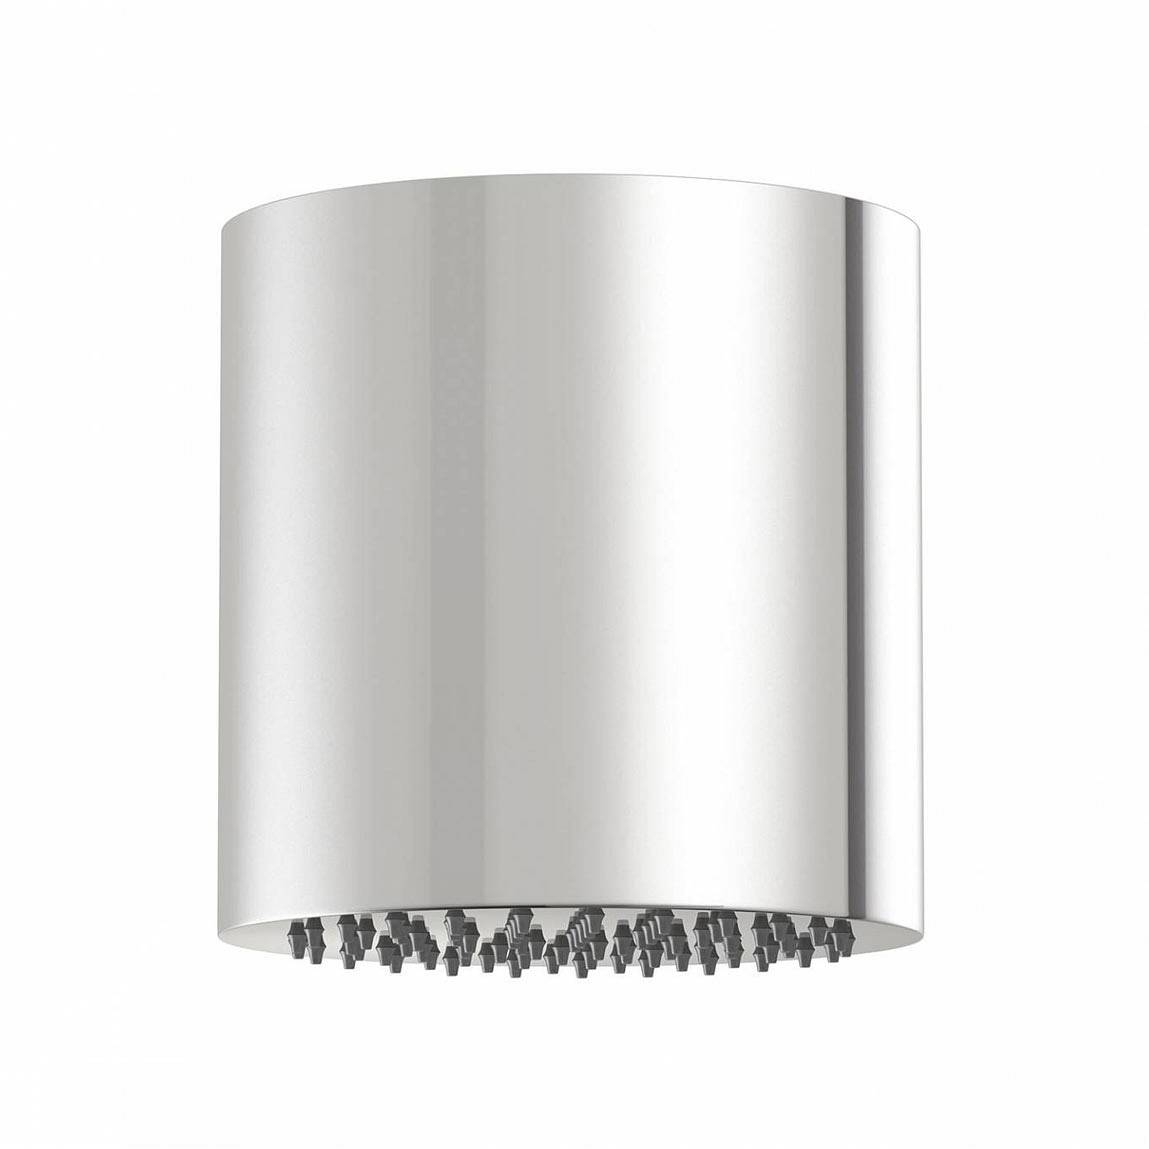 Image of Stratus Ceiling 200mm Shower Head Large